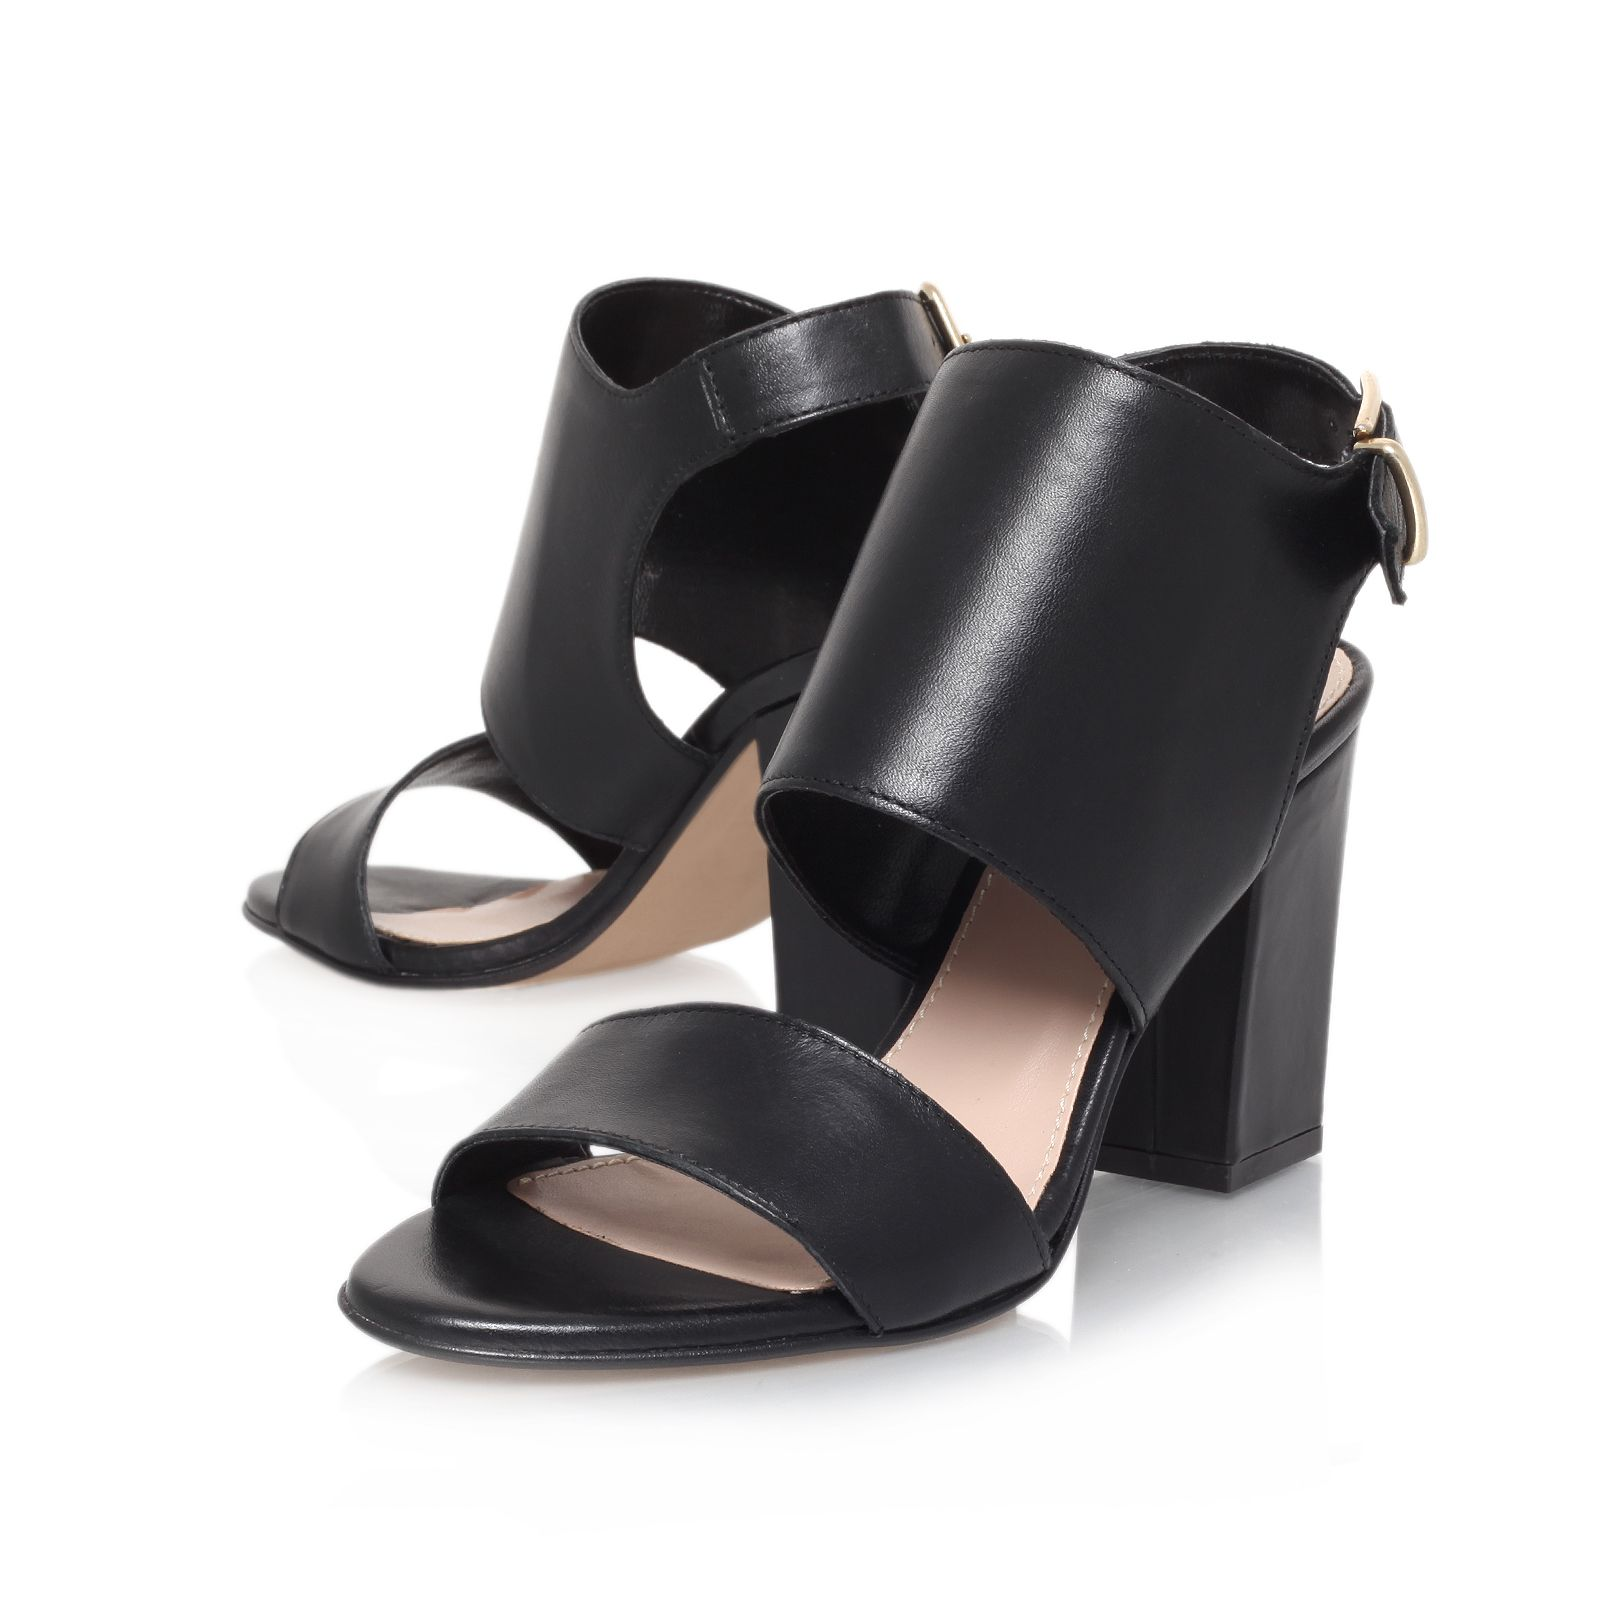 Krackow high heel sandals